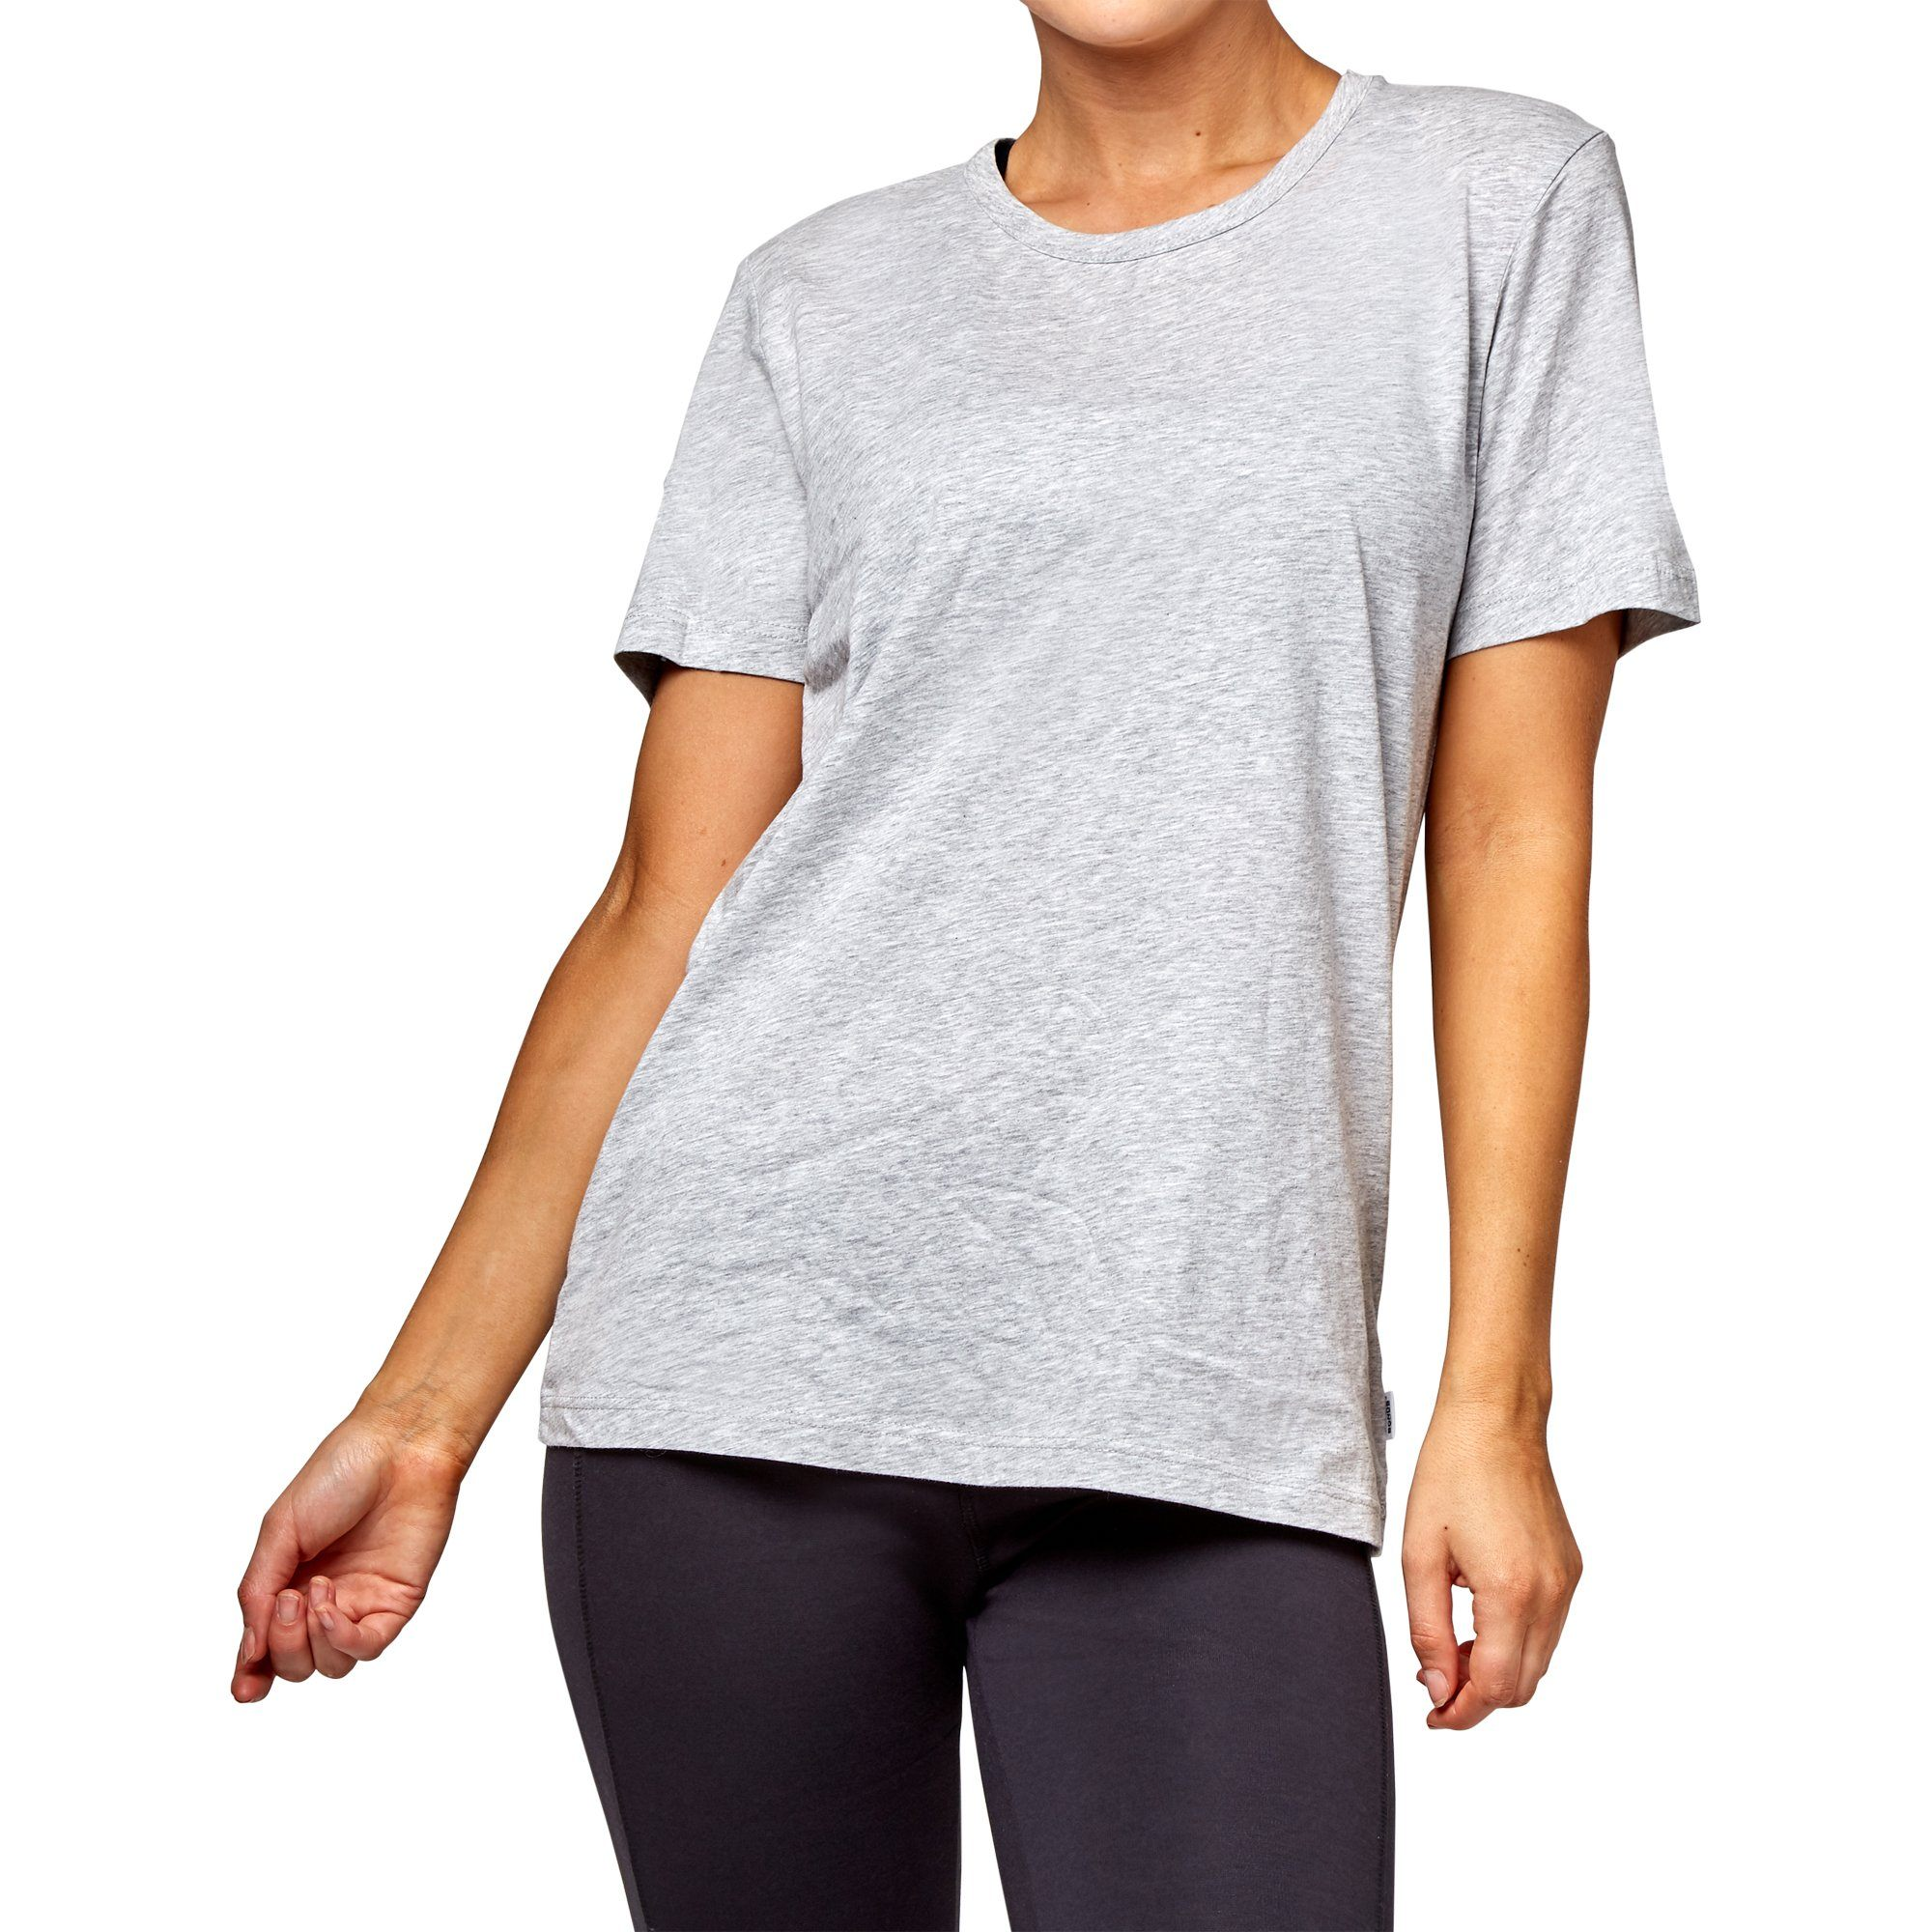 Bonds Women's Crew Tee LSJ - New Grey Marble Apparel Bonds